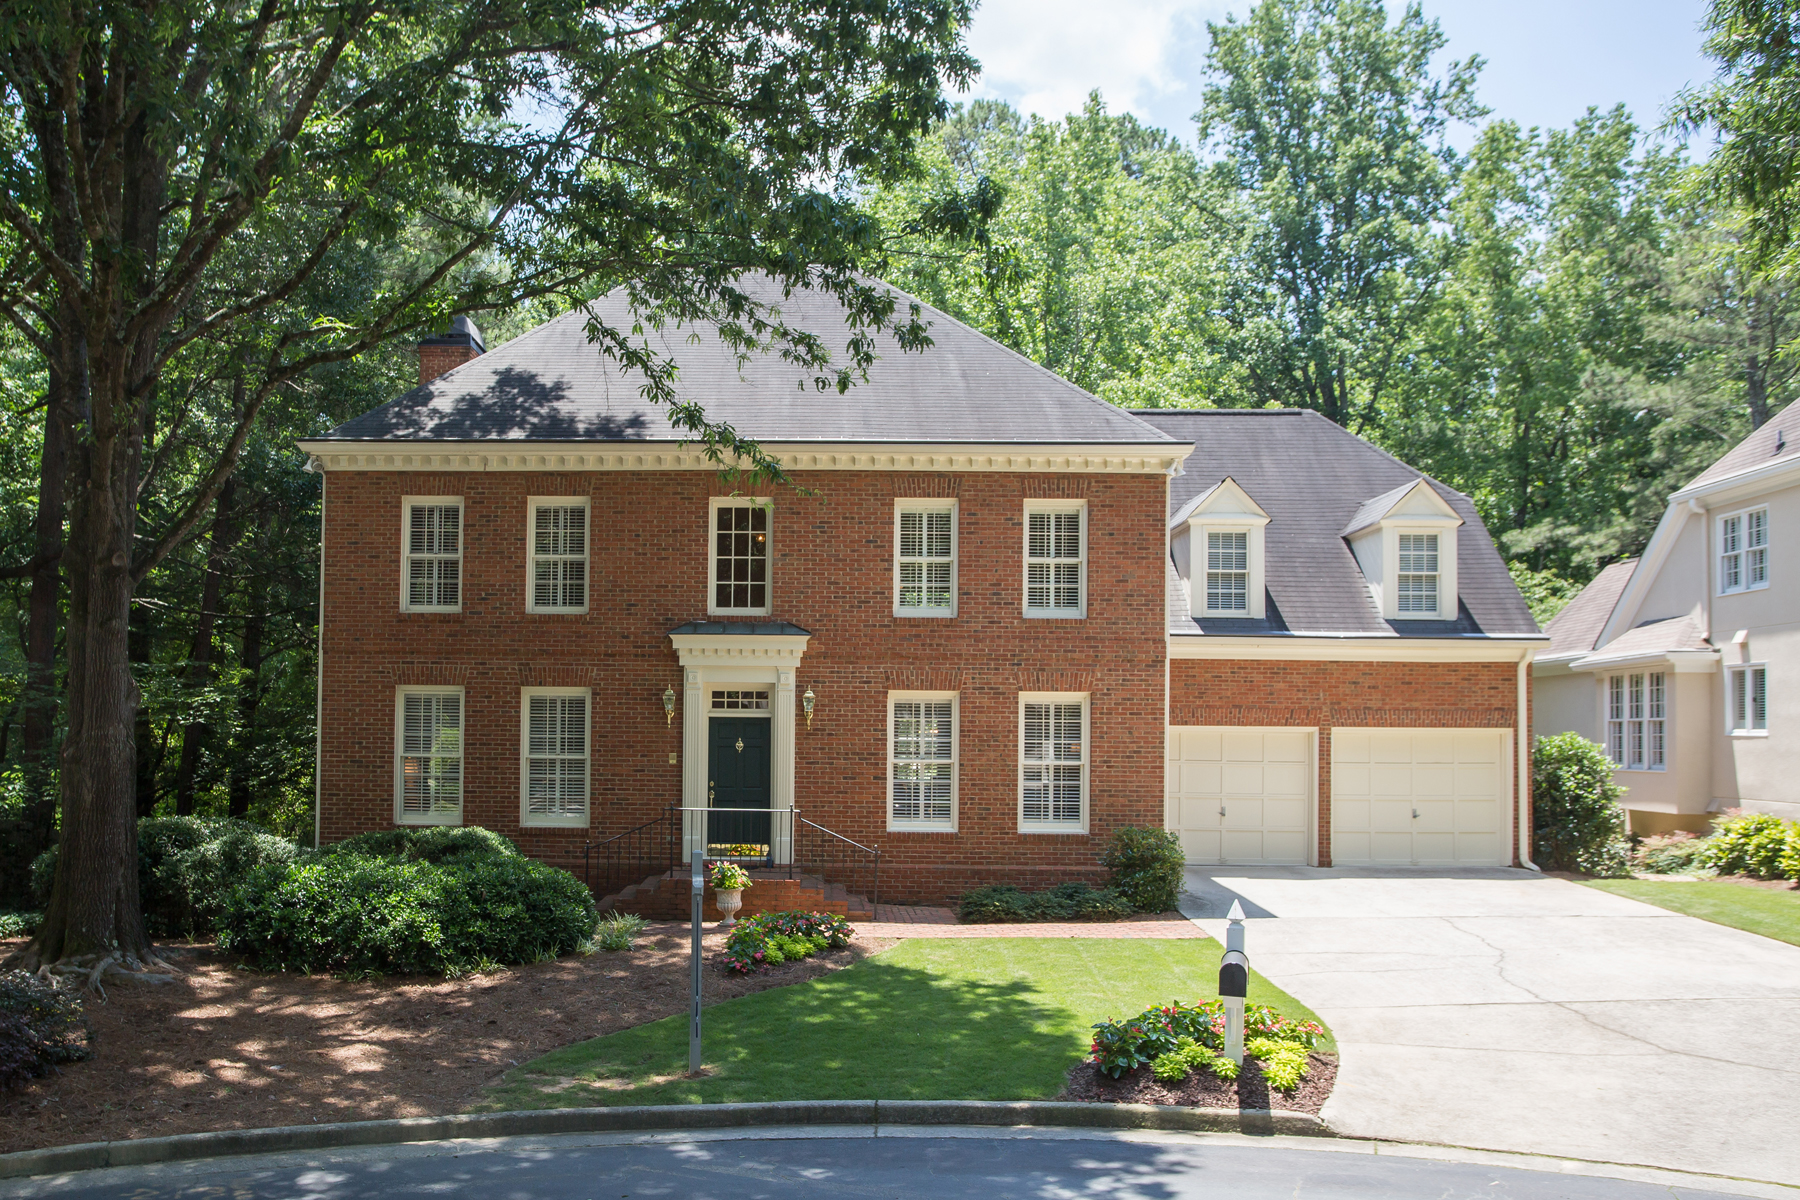 Vivienda unifamiliar por un Venta en Classic Sandy Springs Traditional 245 Woodchase Close NE Sandy Springs, Georgia, 30319 Estados Unidos